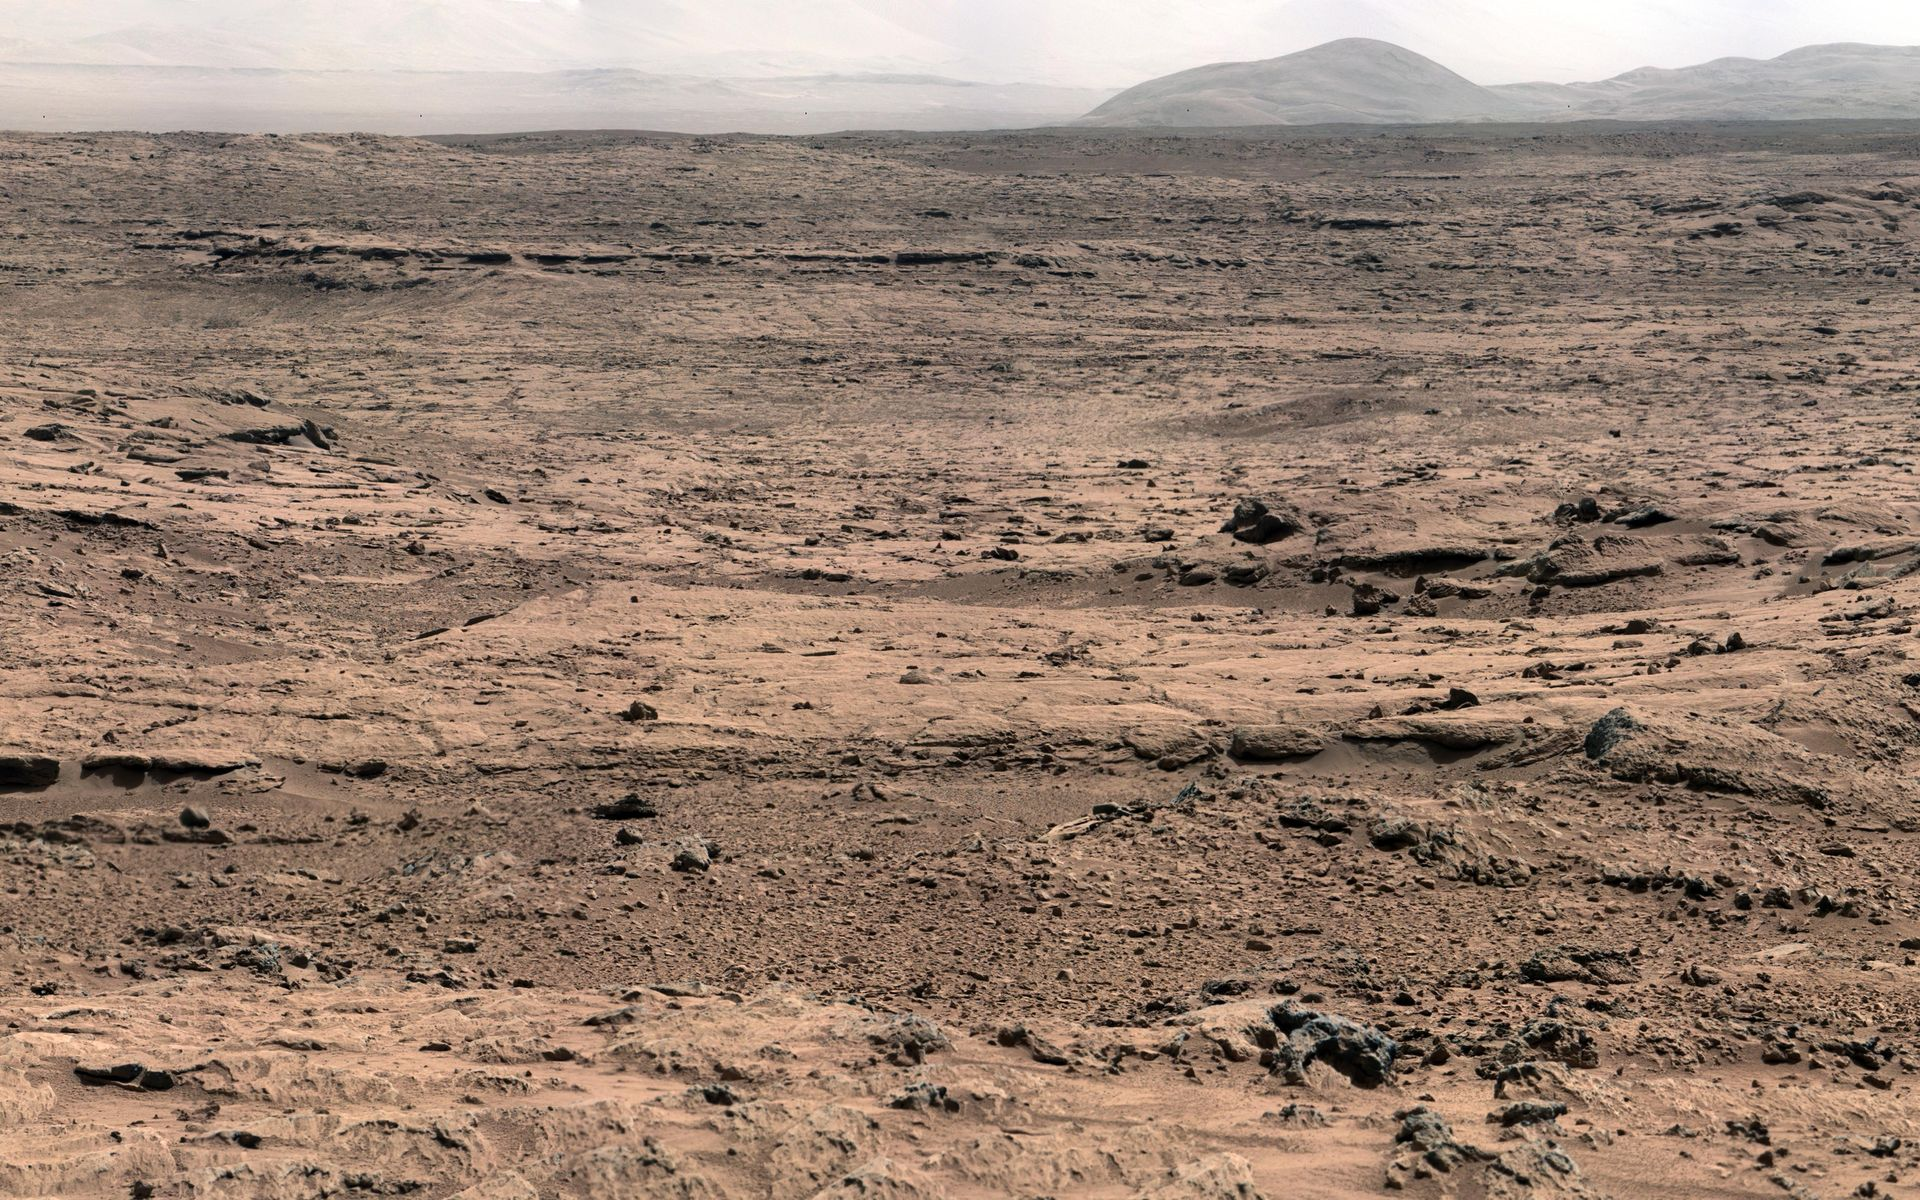 Space Images | Panoramic View From 'Rocknest' Position of ...